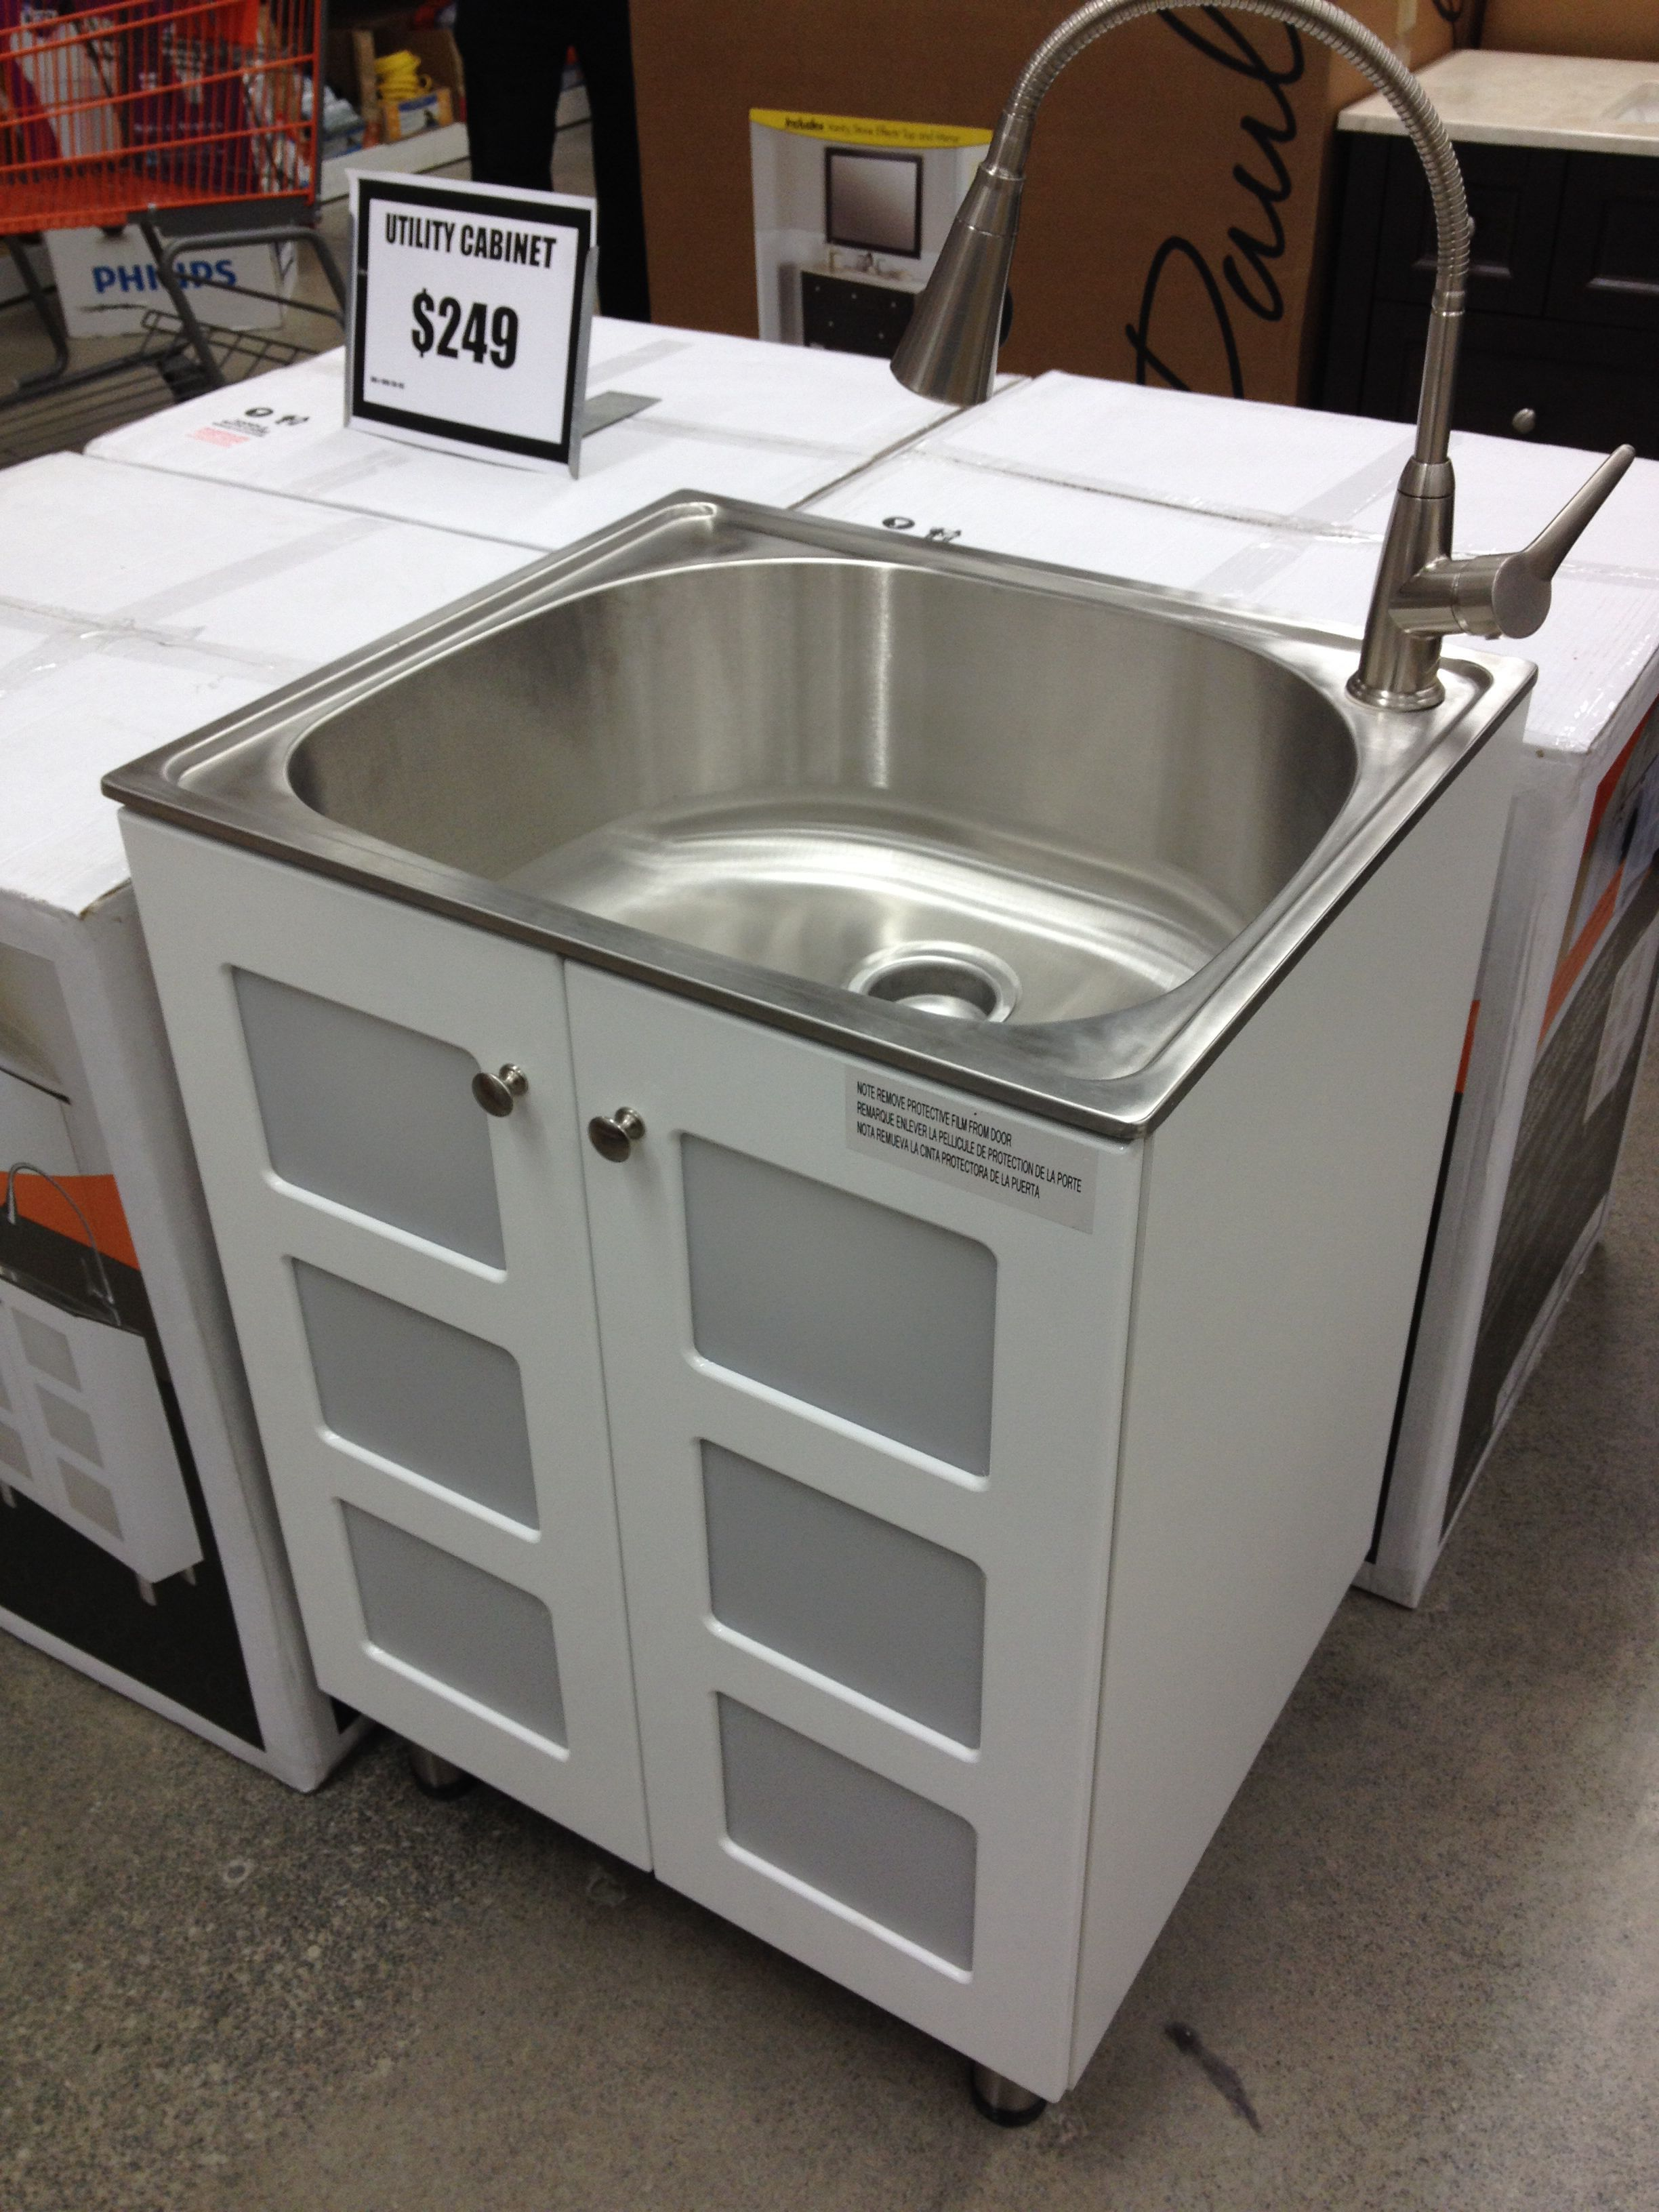 Love This Stainless Steel Laundry Sink Cabinet 249 Home Depot